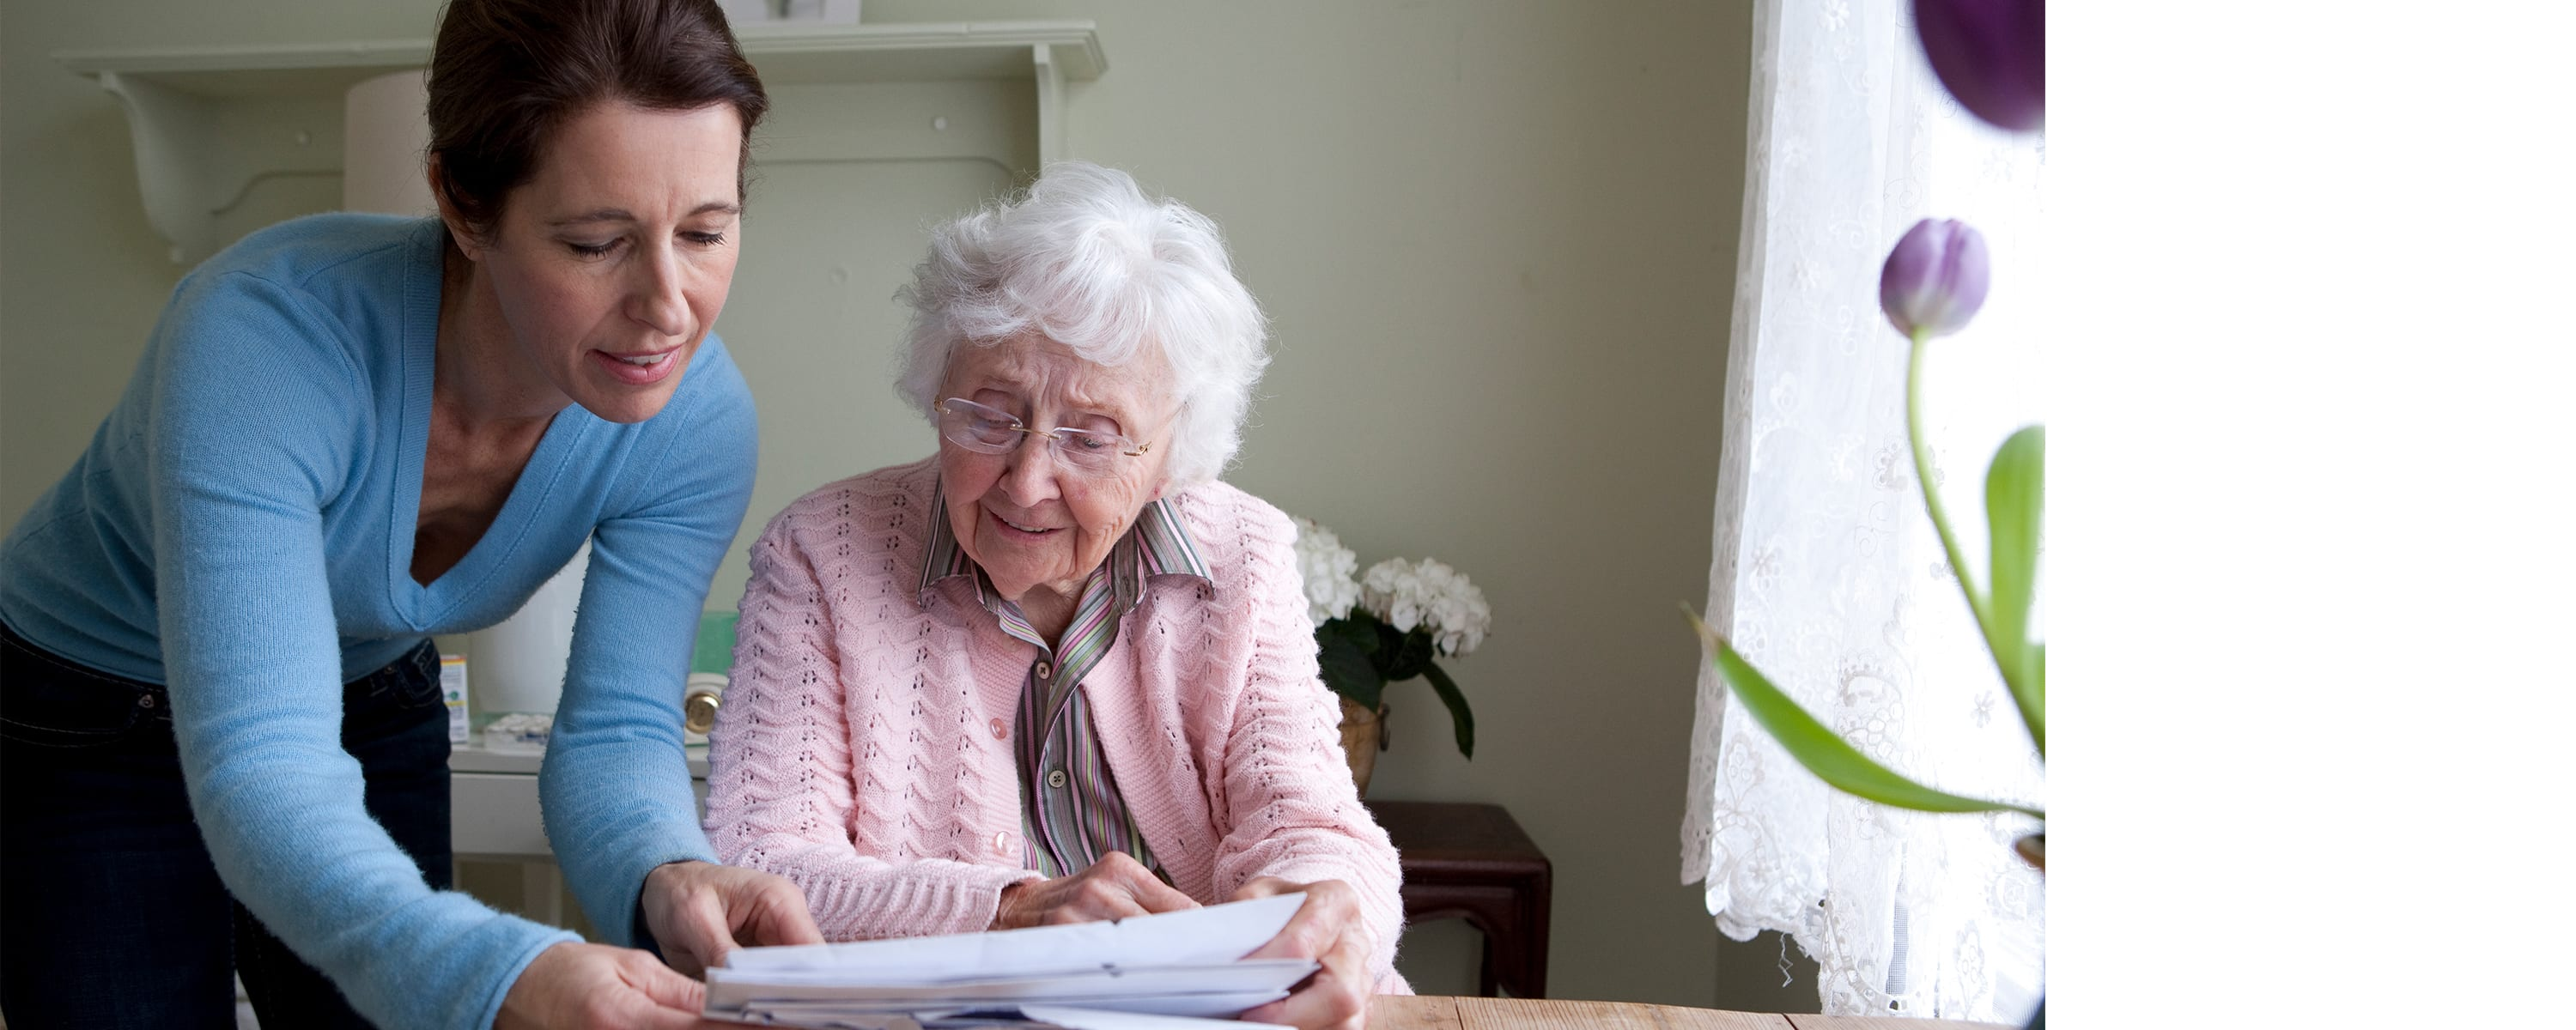 woman looking over paperwork with an elderly woman